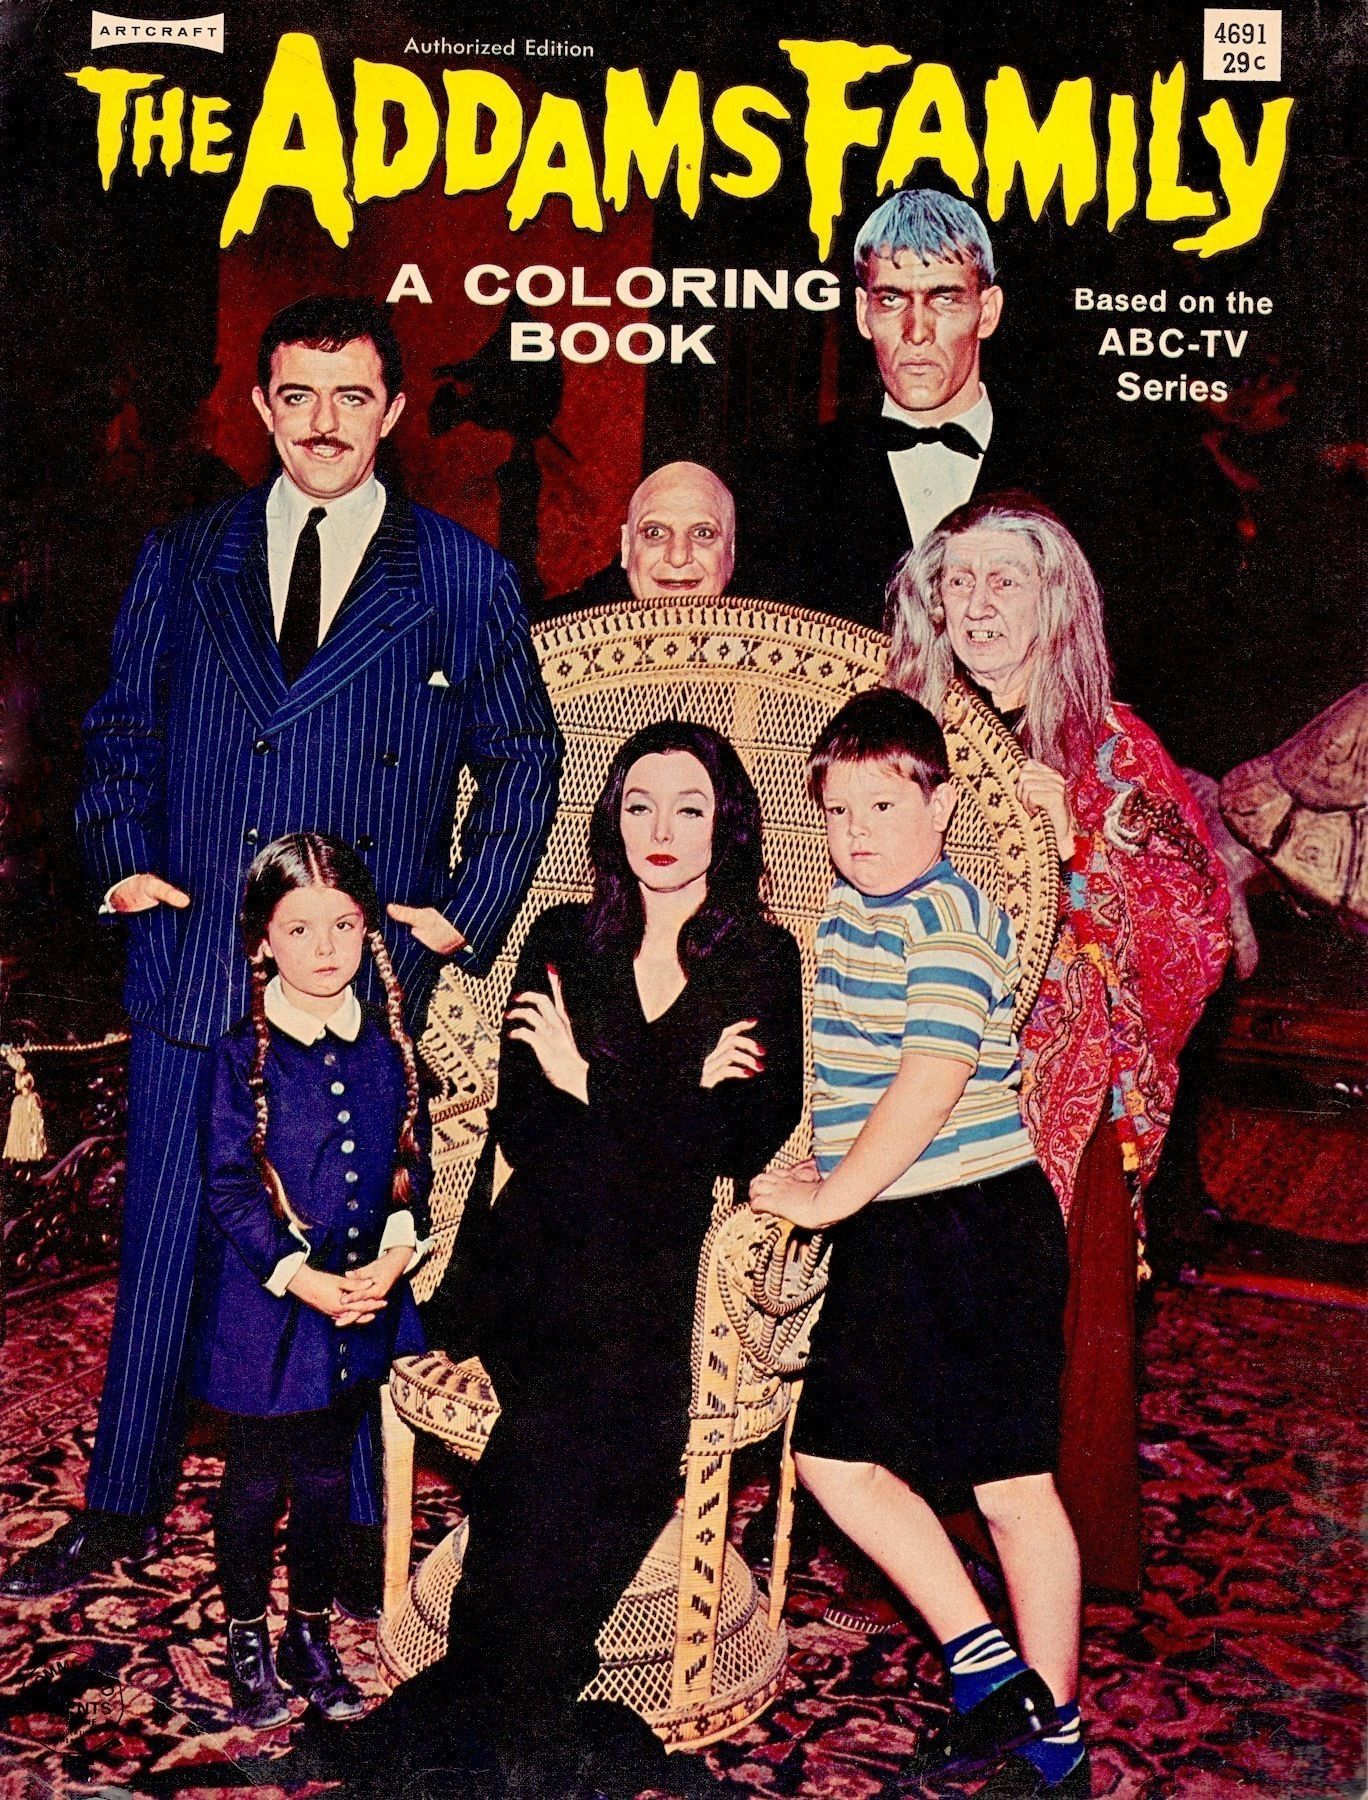 Addams Family Rare Vintage Coloring Book 1965 From My Collection Follow Minkshmink On Pinterest Theaddams Vintage Coloring Books Coloring Books Little Books